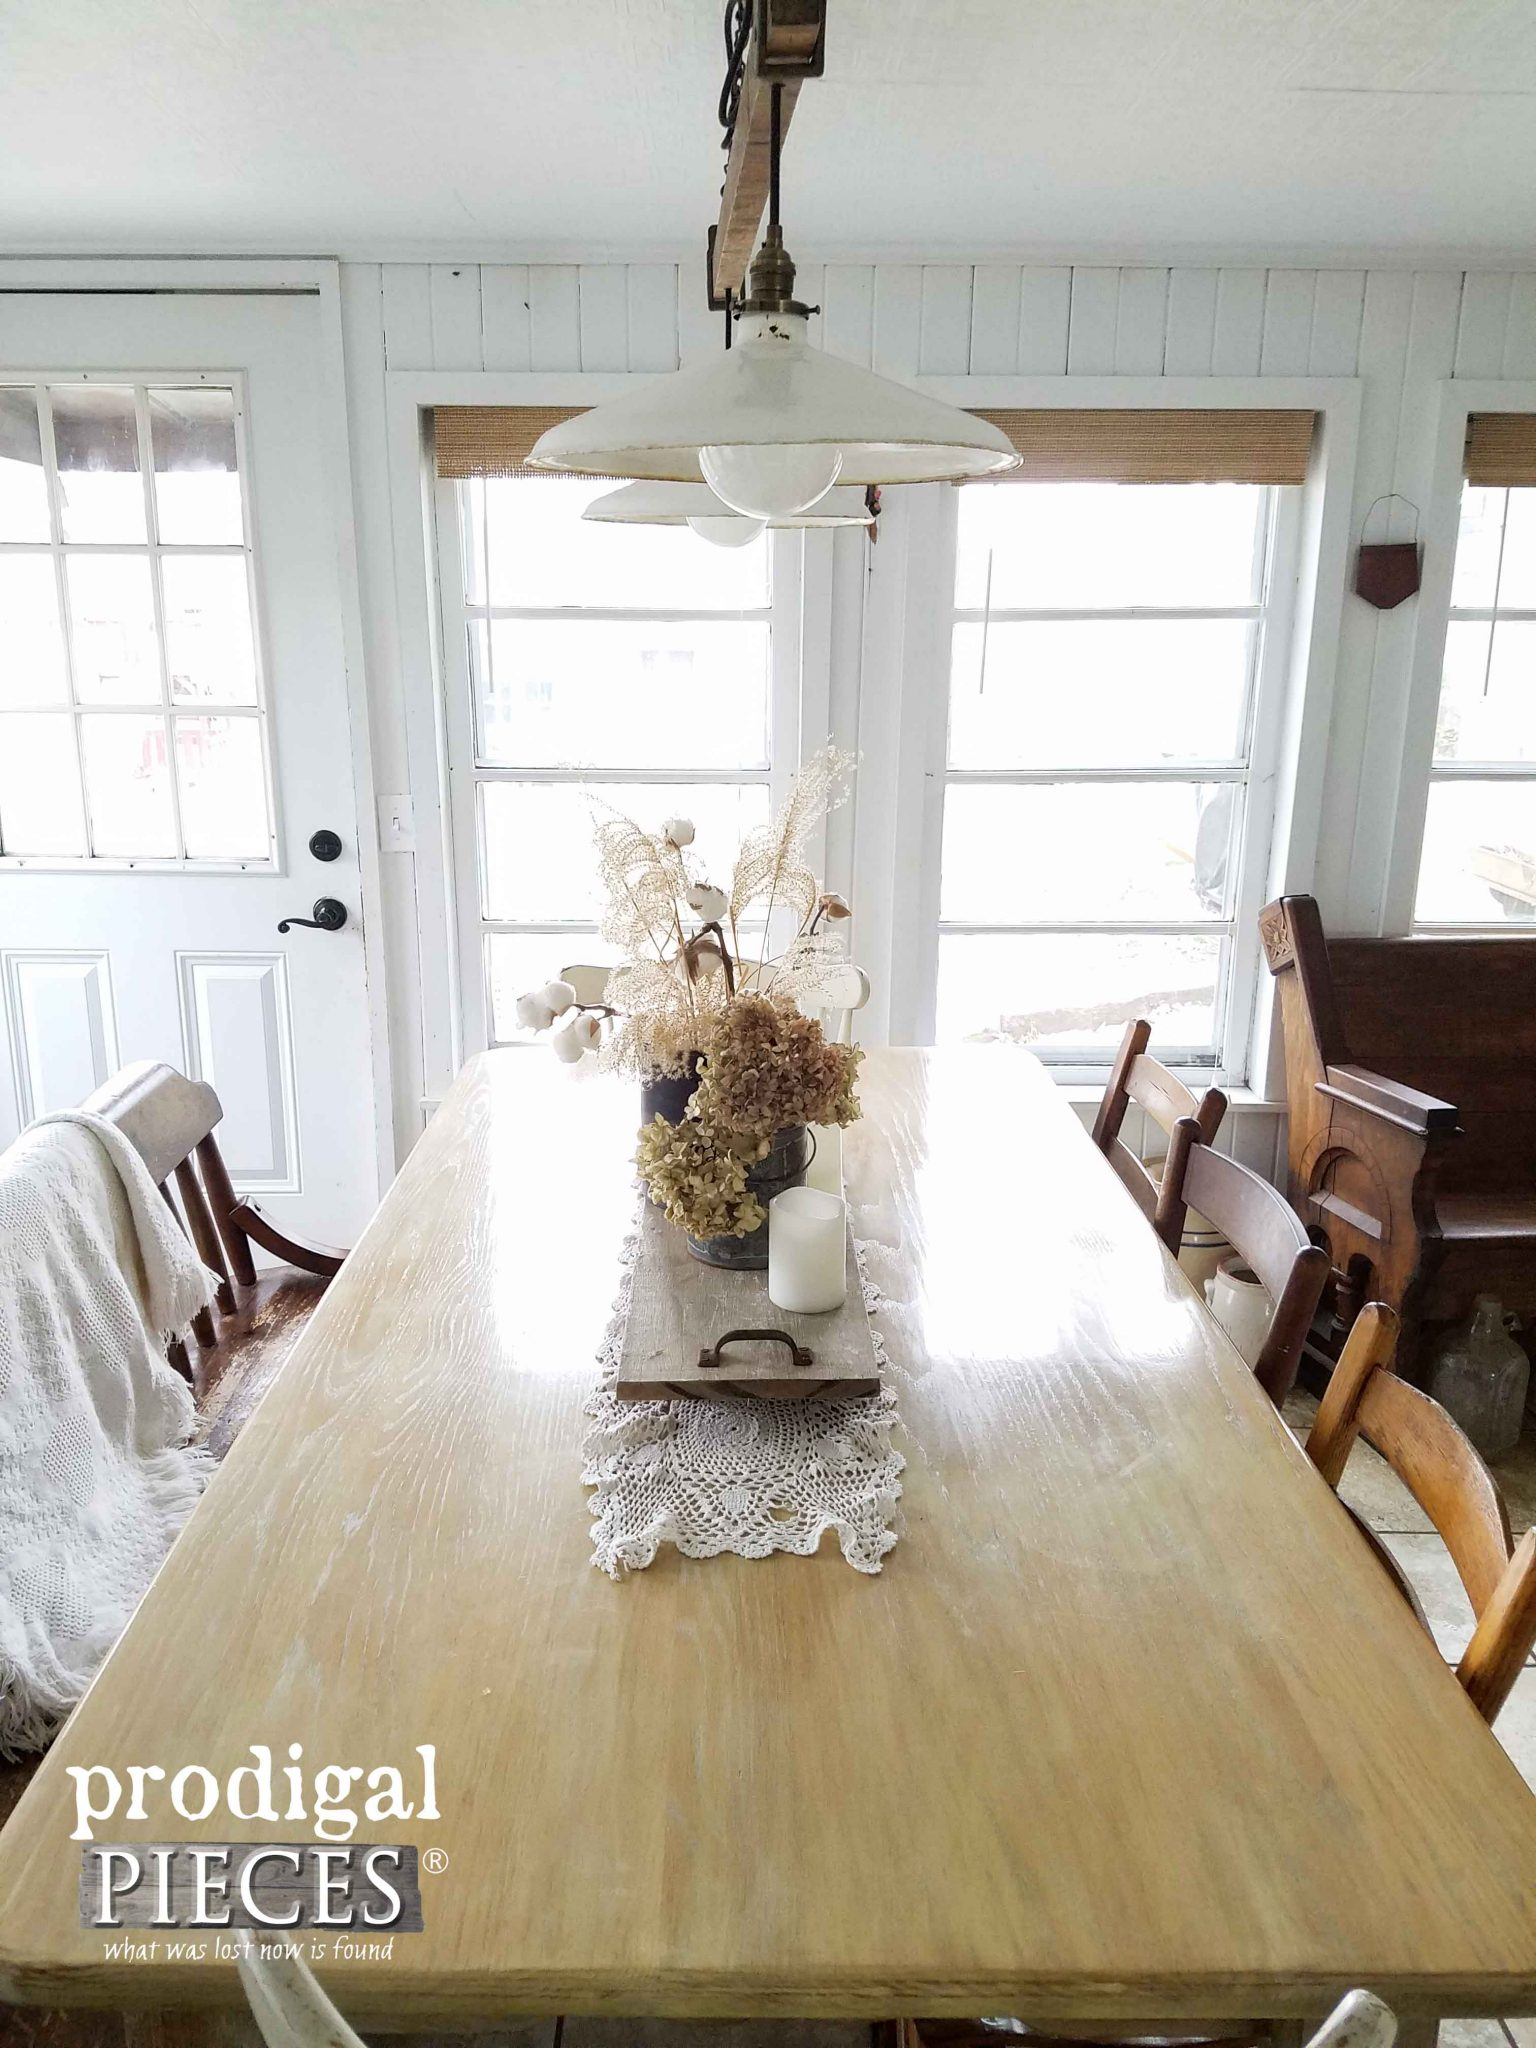 Farmhouse Dining Table with DIY Decor by Prodigal Pieces | prodigalpieces.com